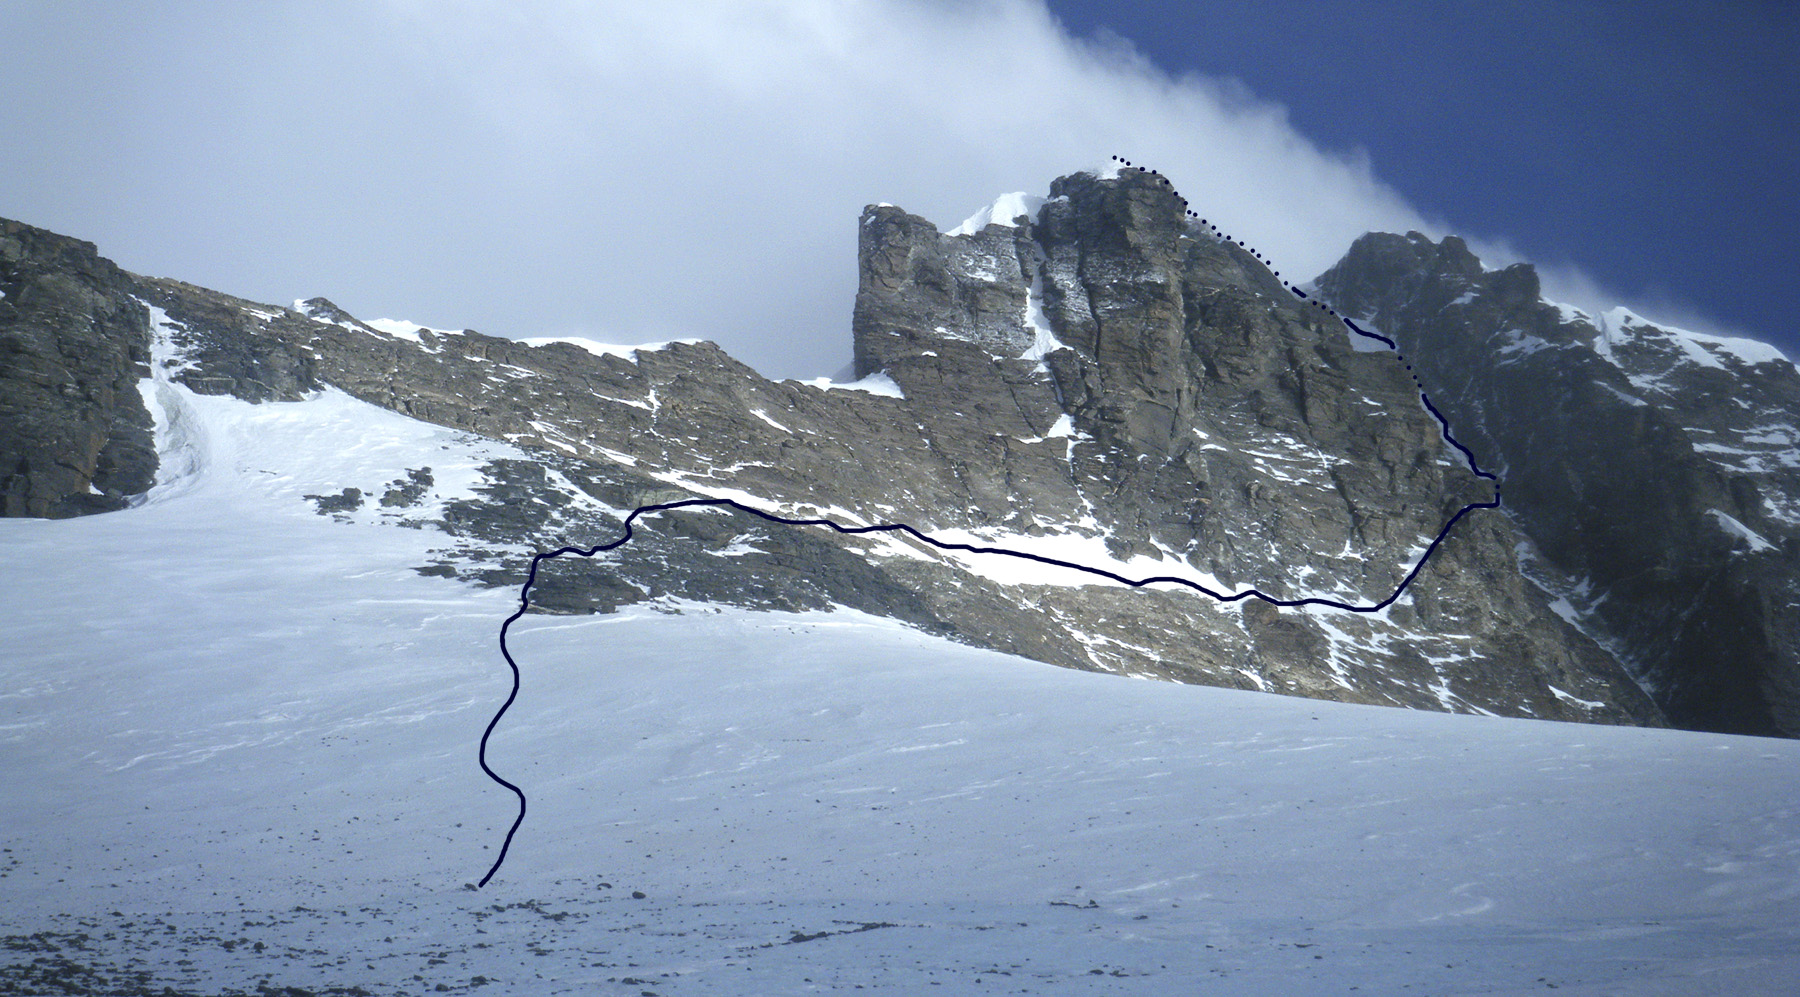 Lhotse from the South Col, showing Urubko's route across west face.